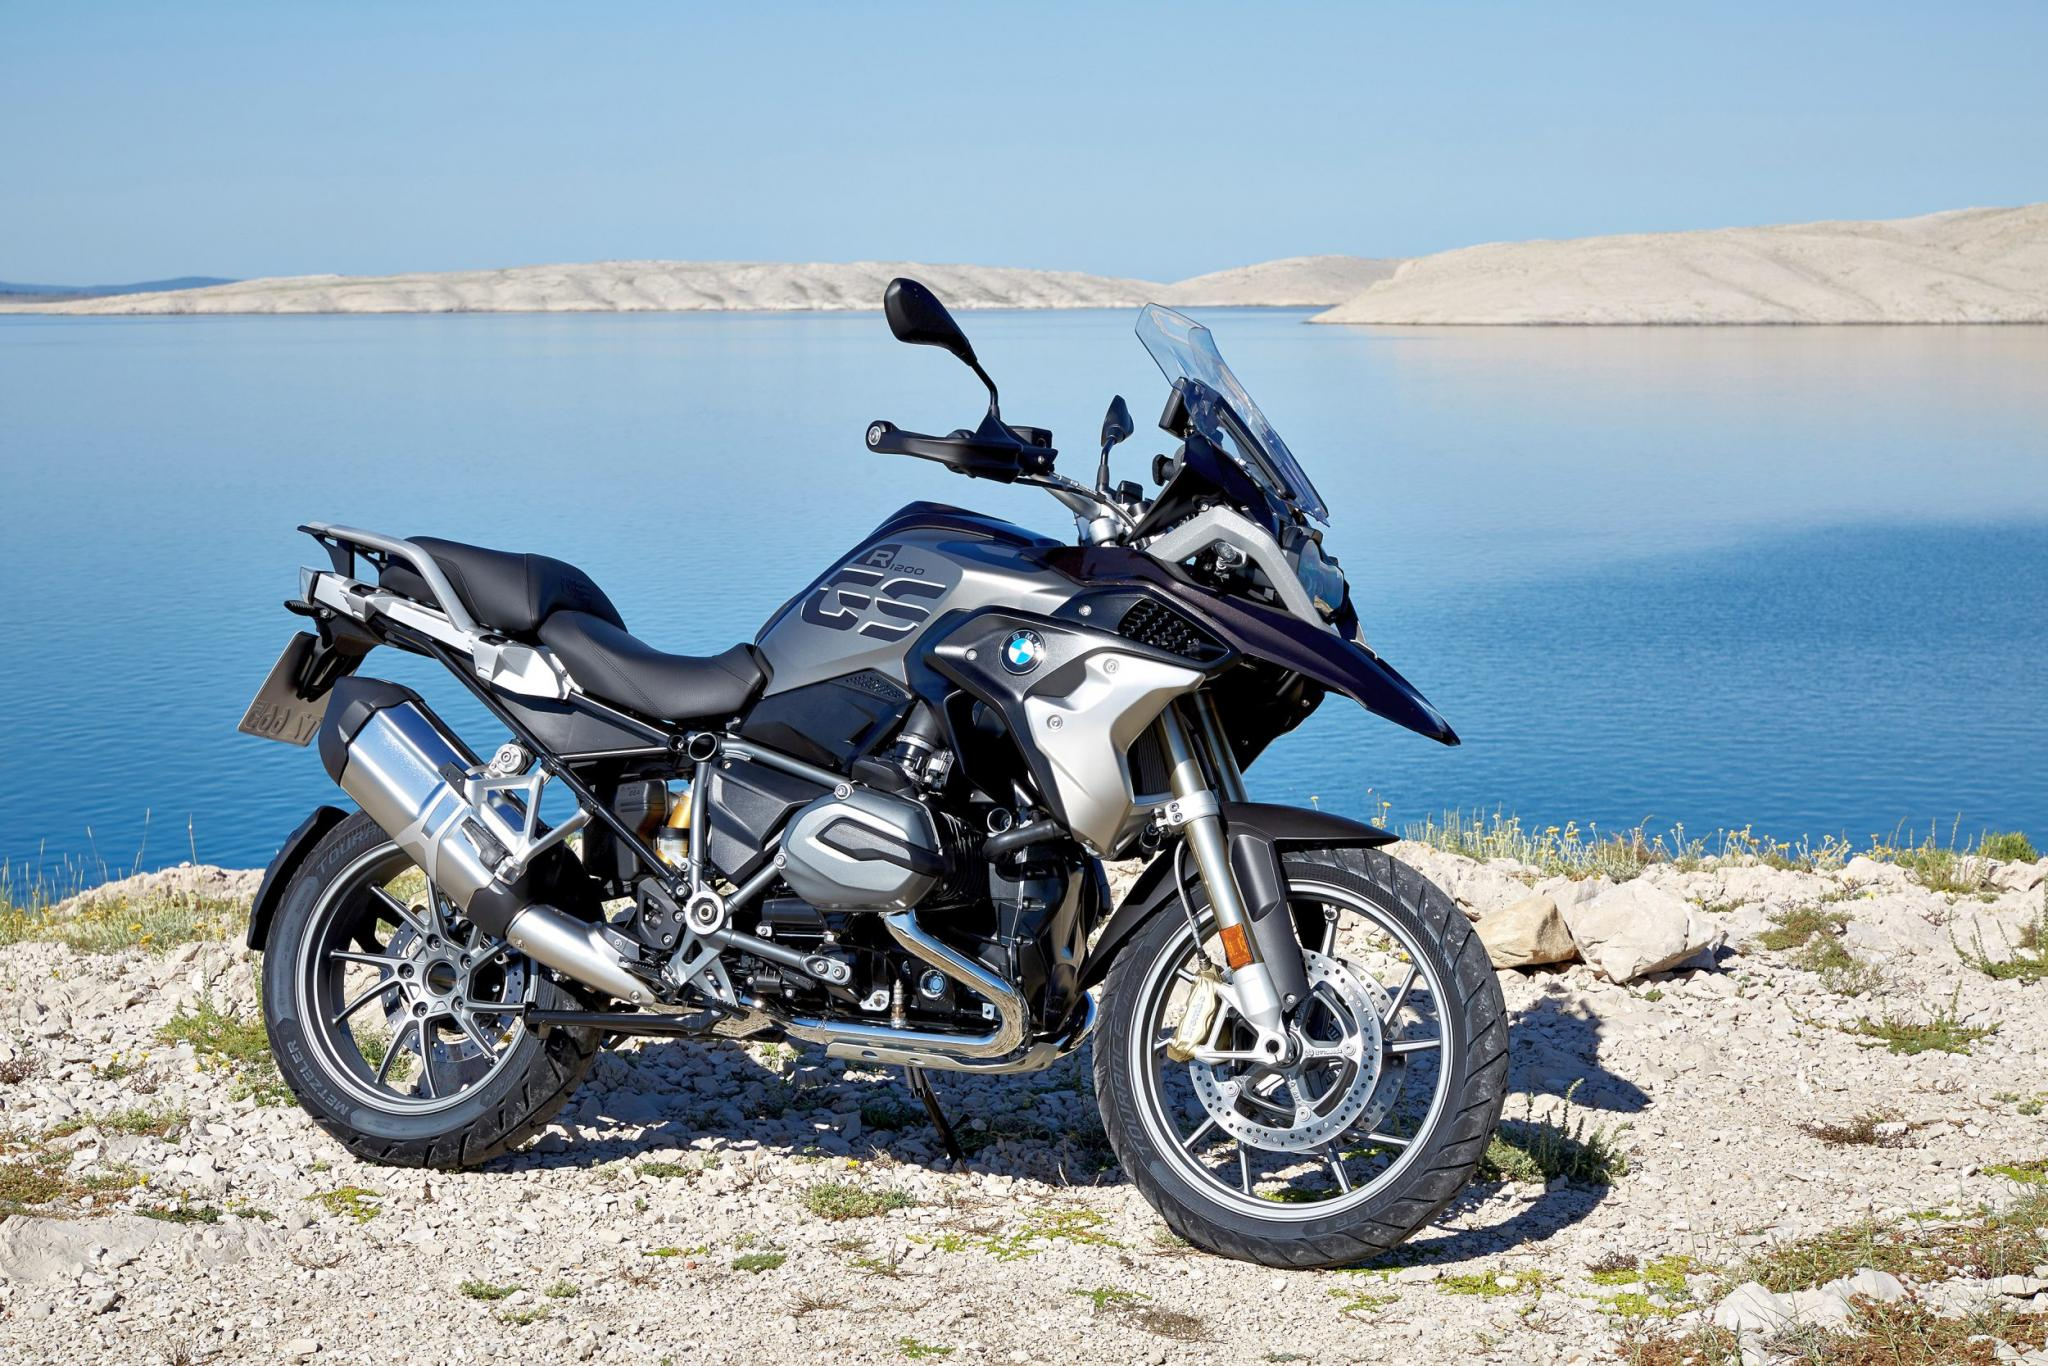 bmw r 1200 gs 2017 motorrad fotos motorrad bilder. Black Bedroom Furniture Sets. Home Design Ideas